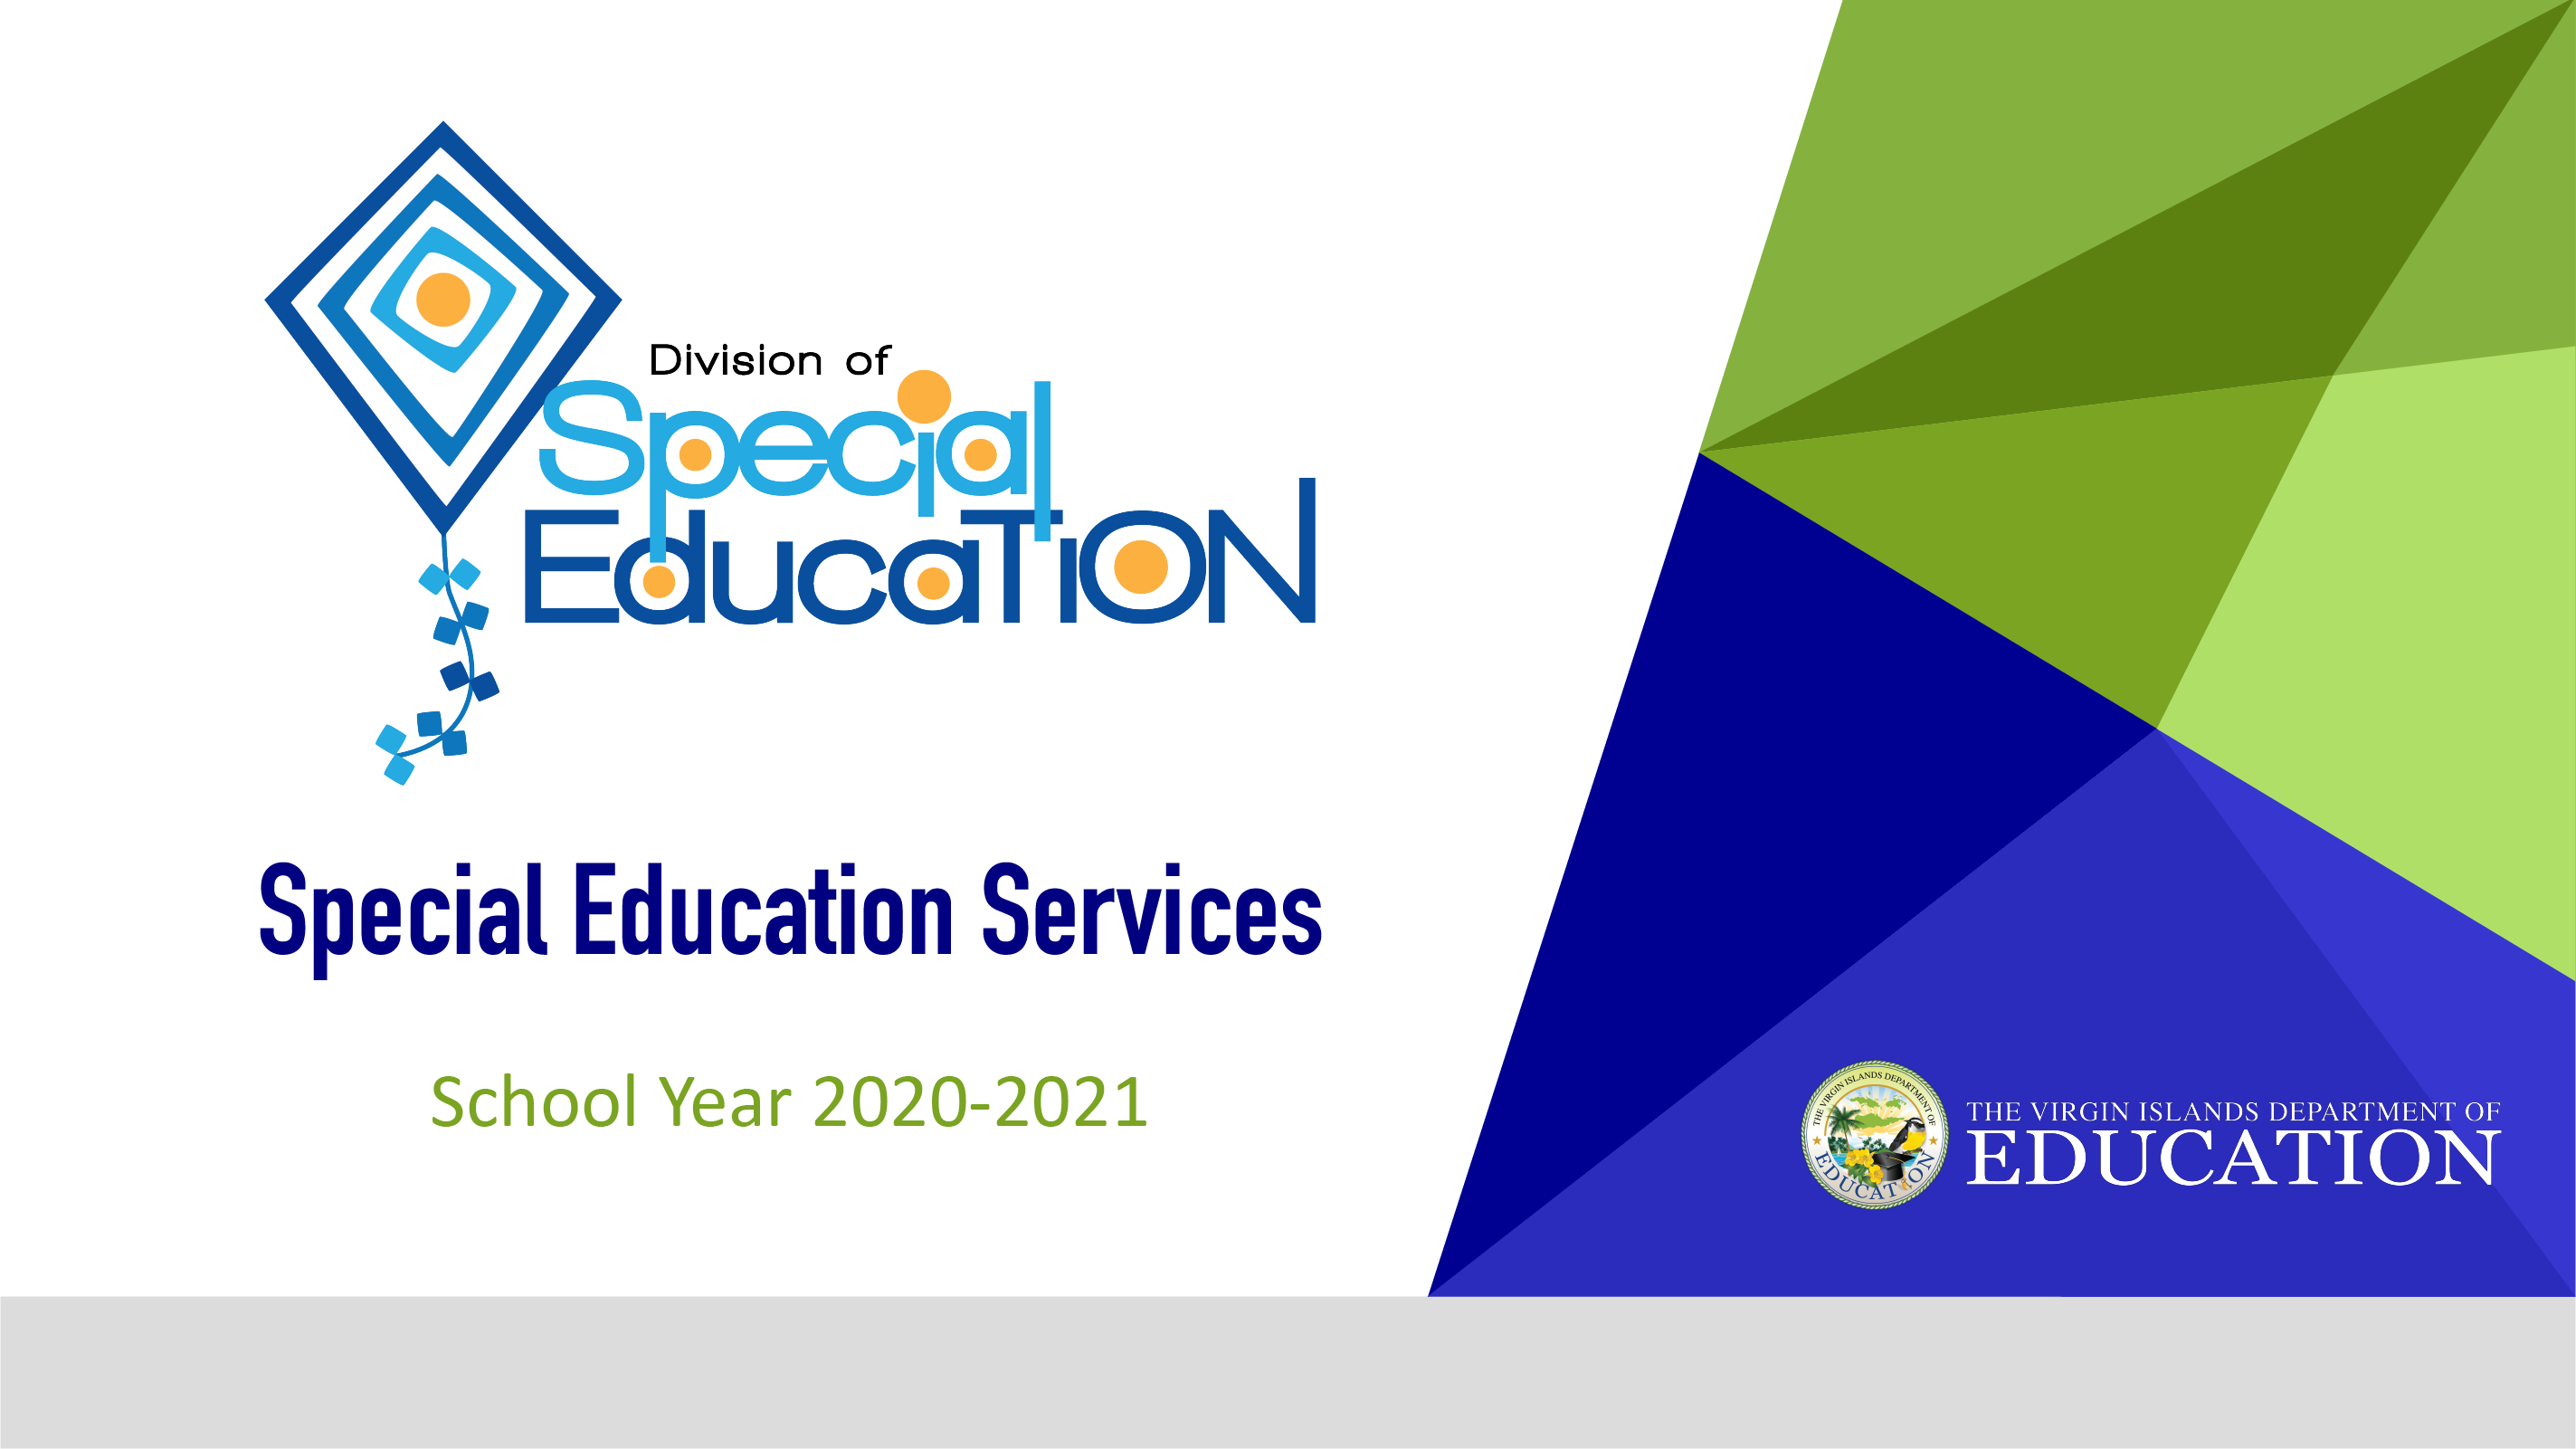 Special Education Services School Year 2020-2021